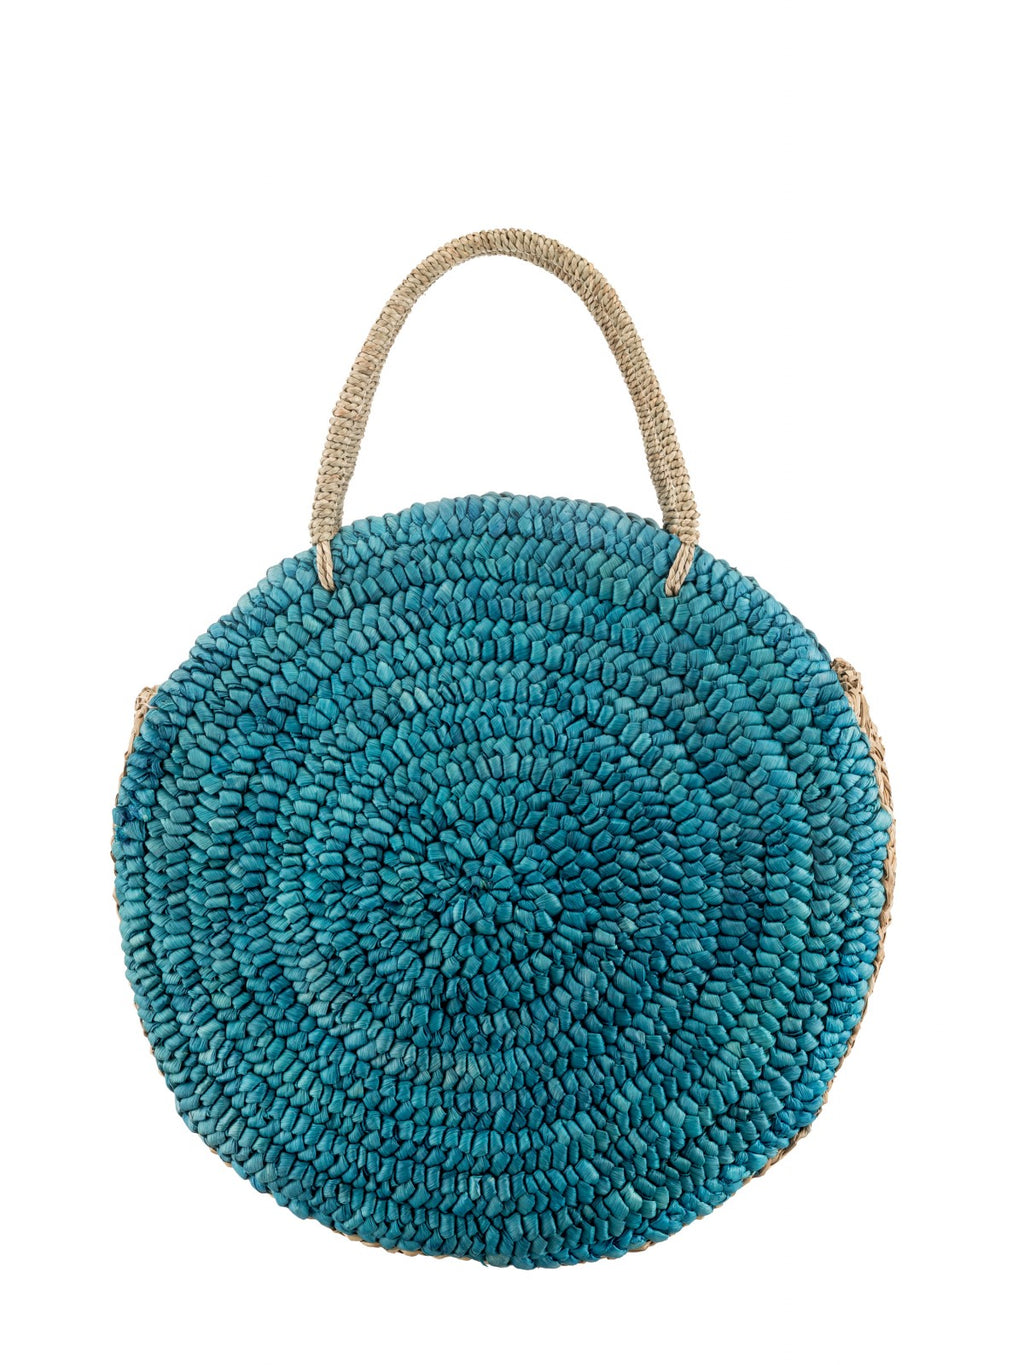 Large Round Straw bag in Turquoise